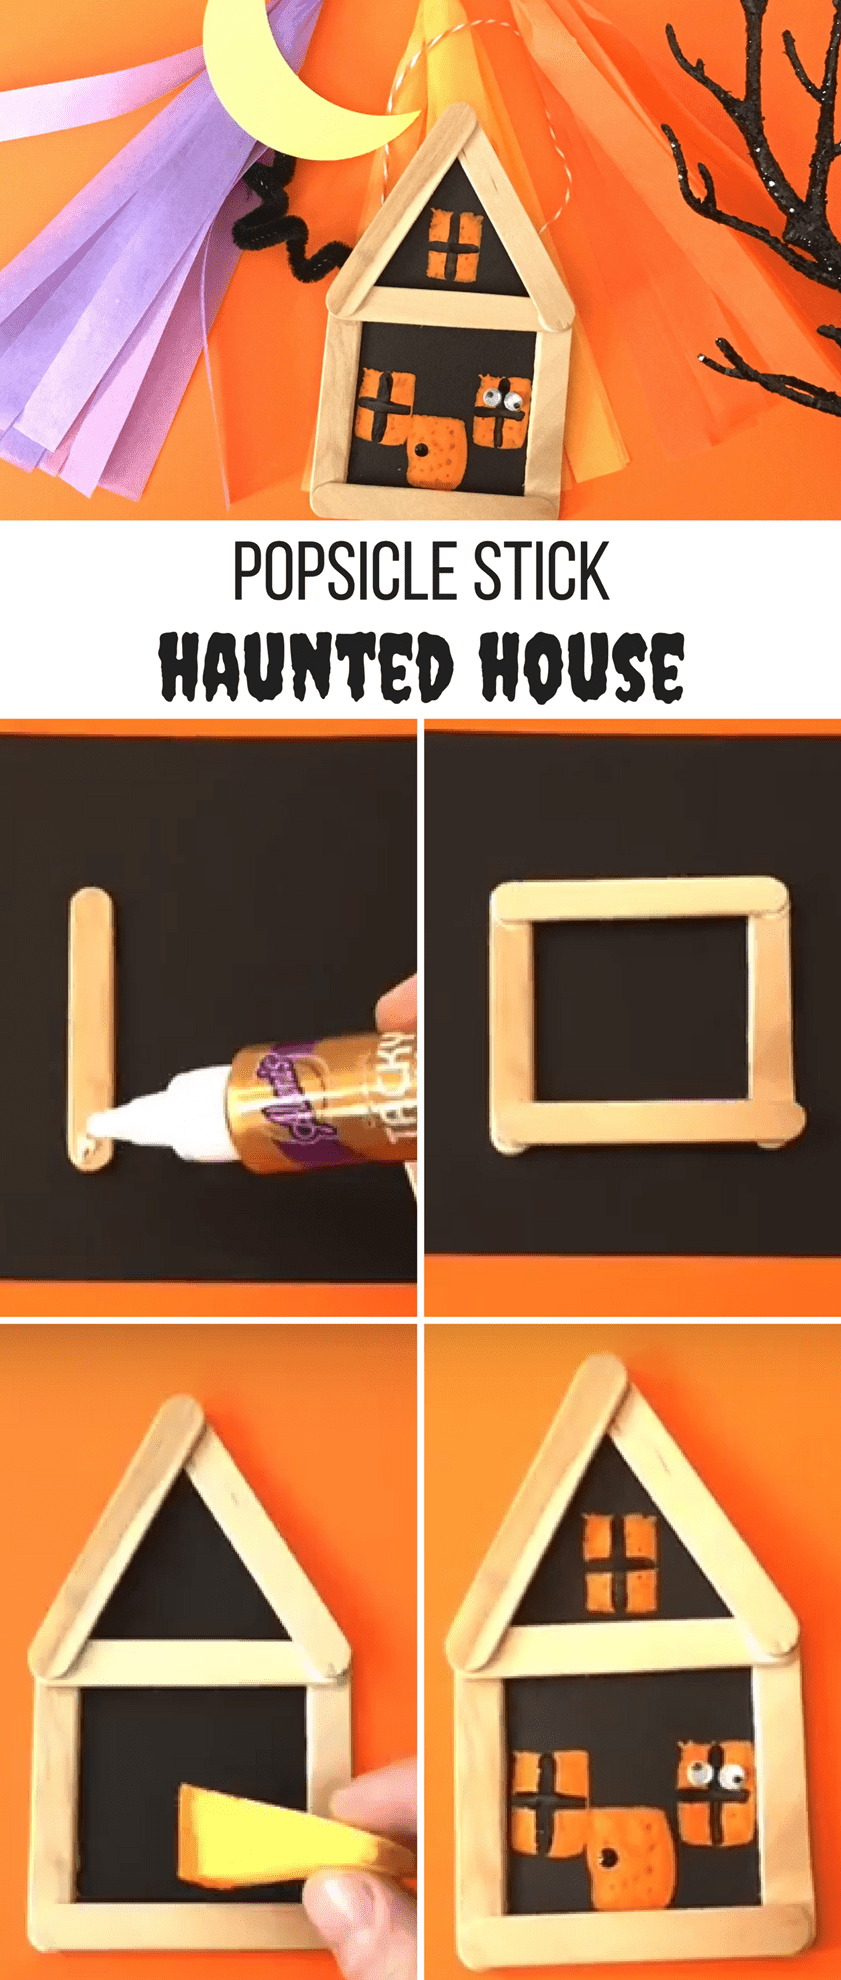 Popsicle Stick Haunted House Step 6